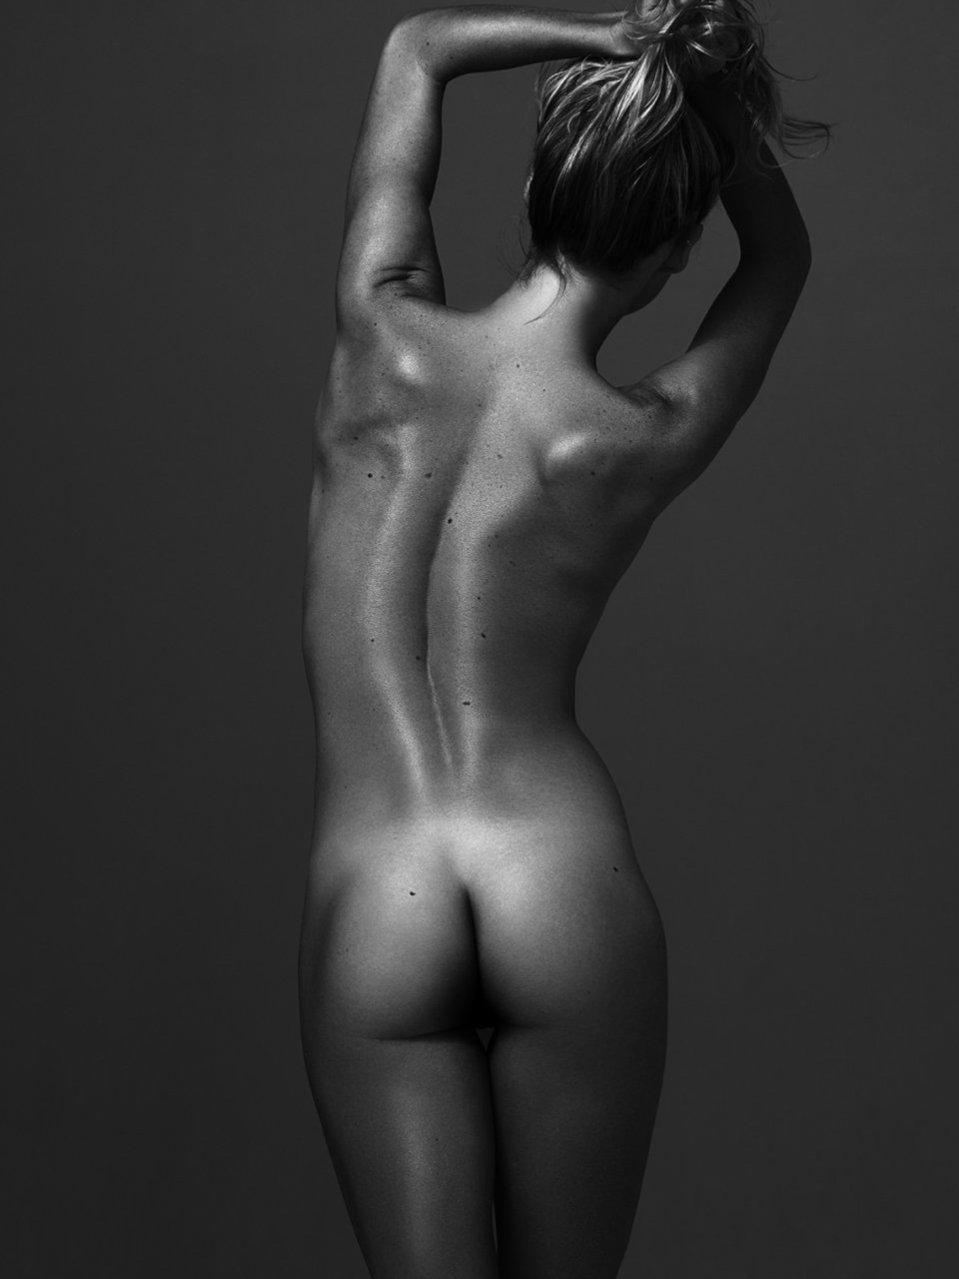 Montana Lower nude rear ass model